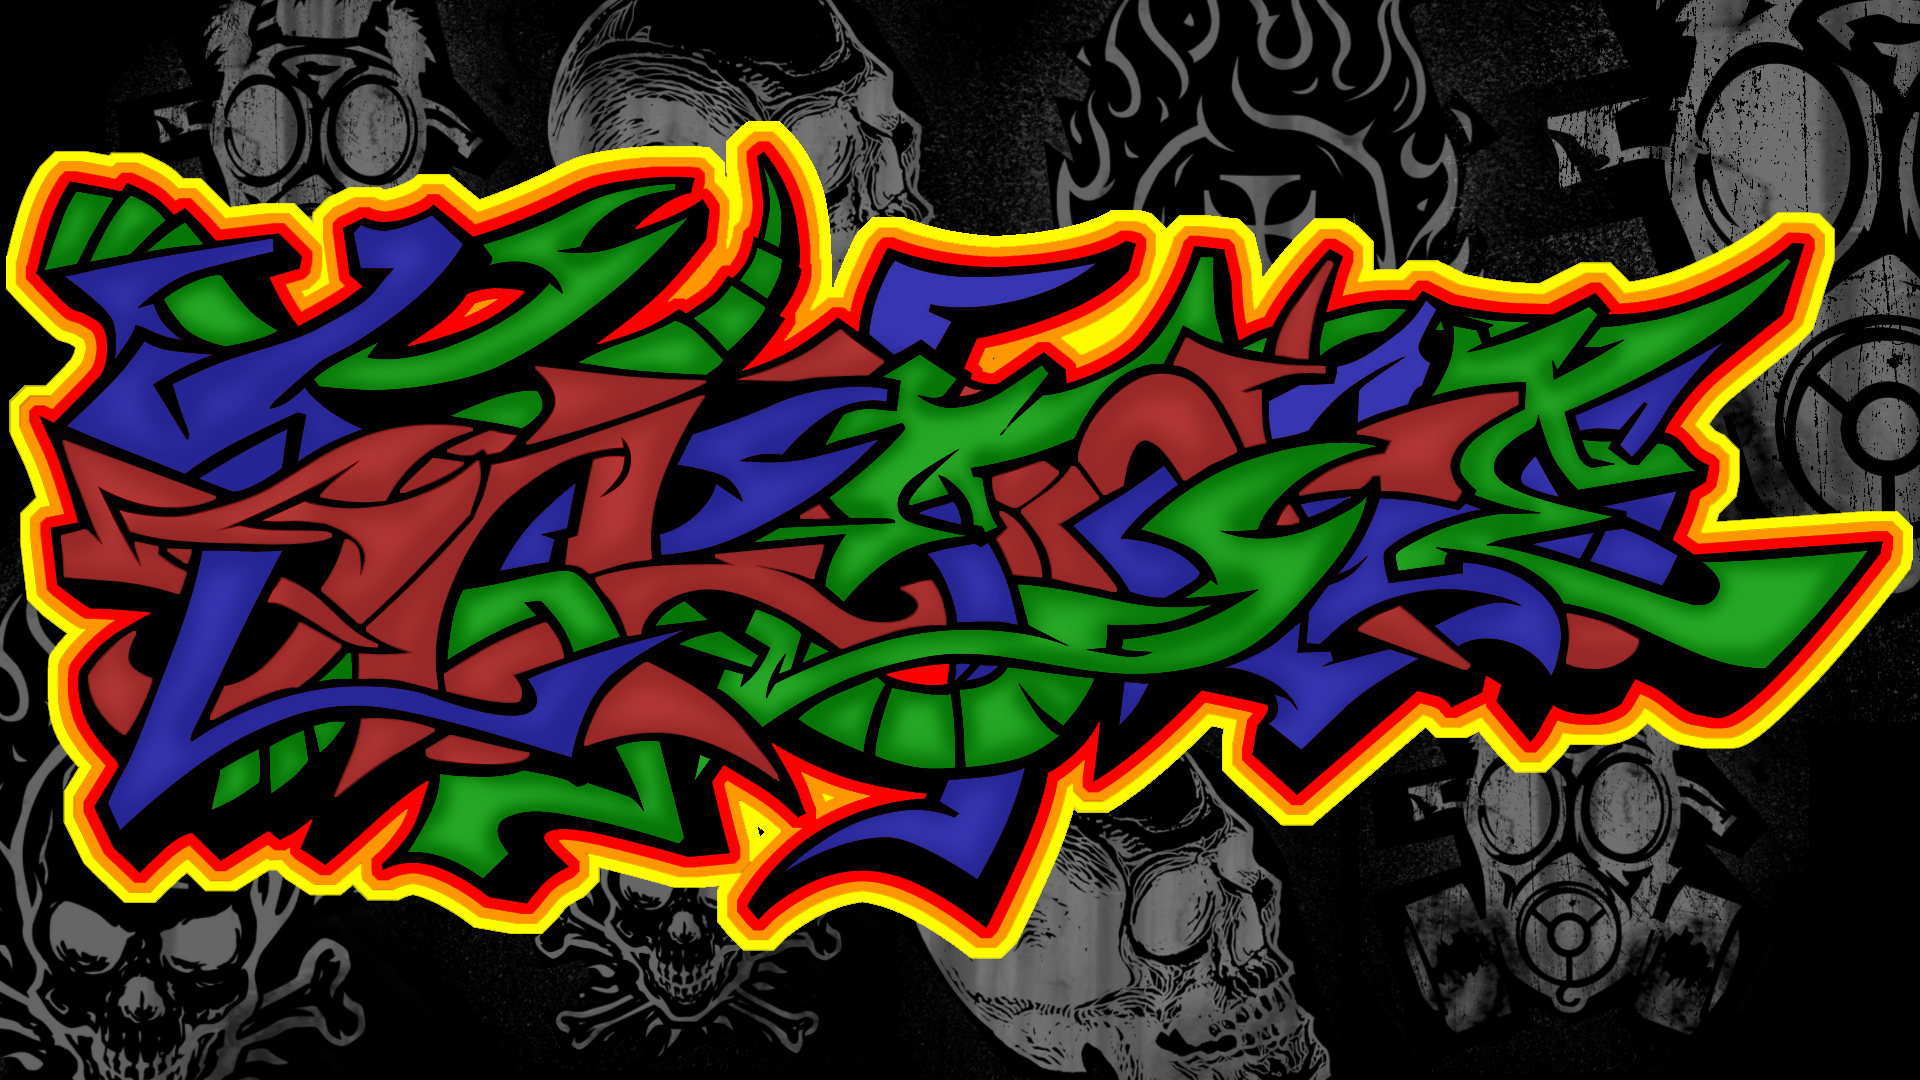 43] Graffiti Wallpapers for Desktop on WallpaperSafari 1920x1080